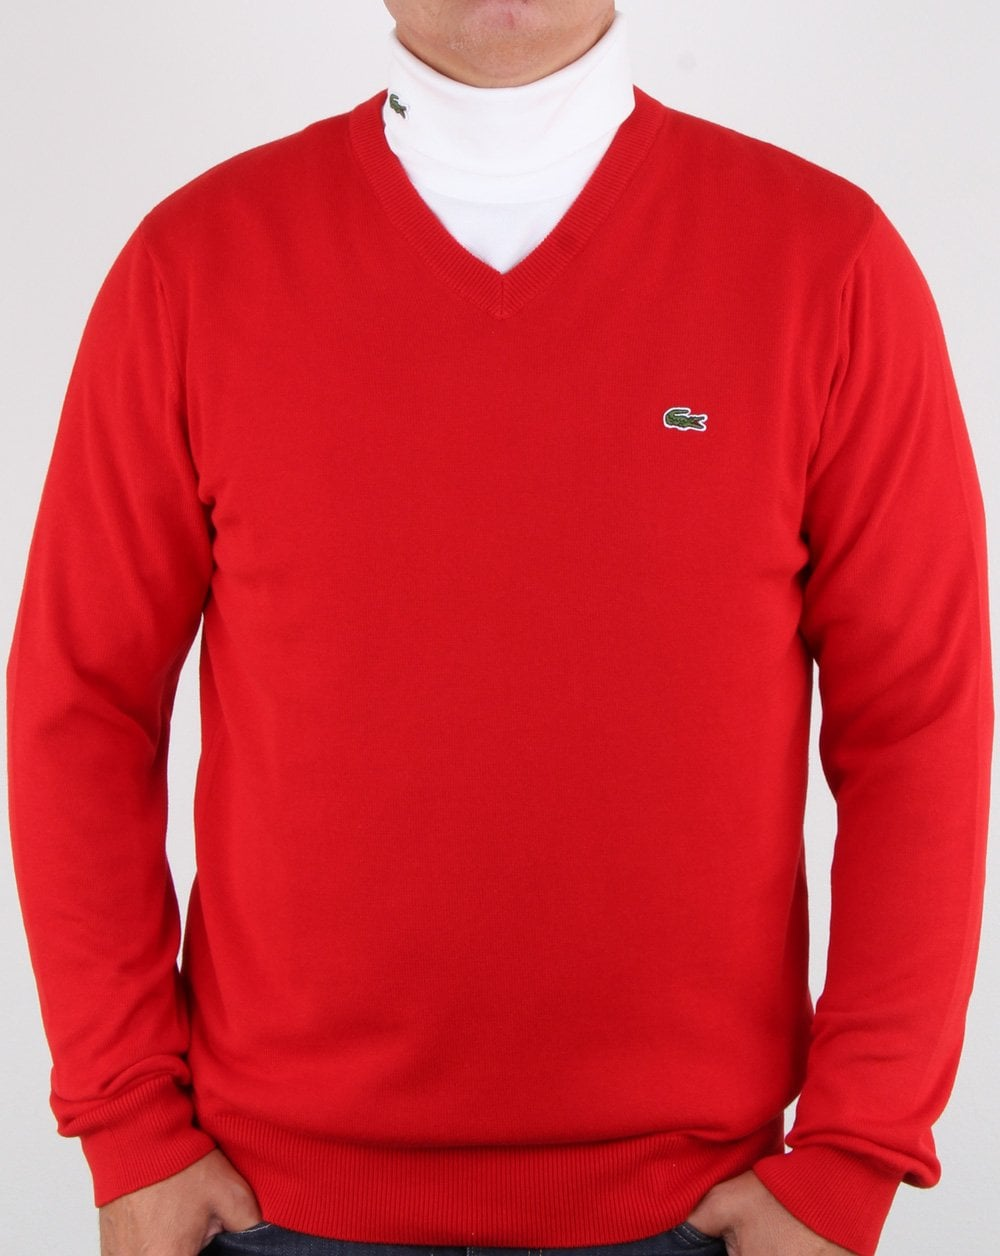 2f4f0412a3 Lacoste V-neck knit Red, jumper, V neck, 80s,sweater,casual,mens